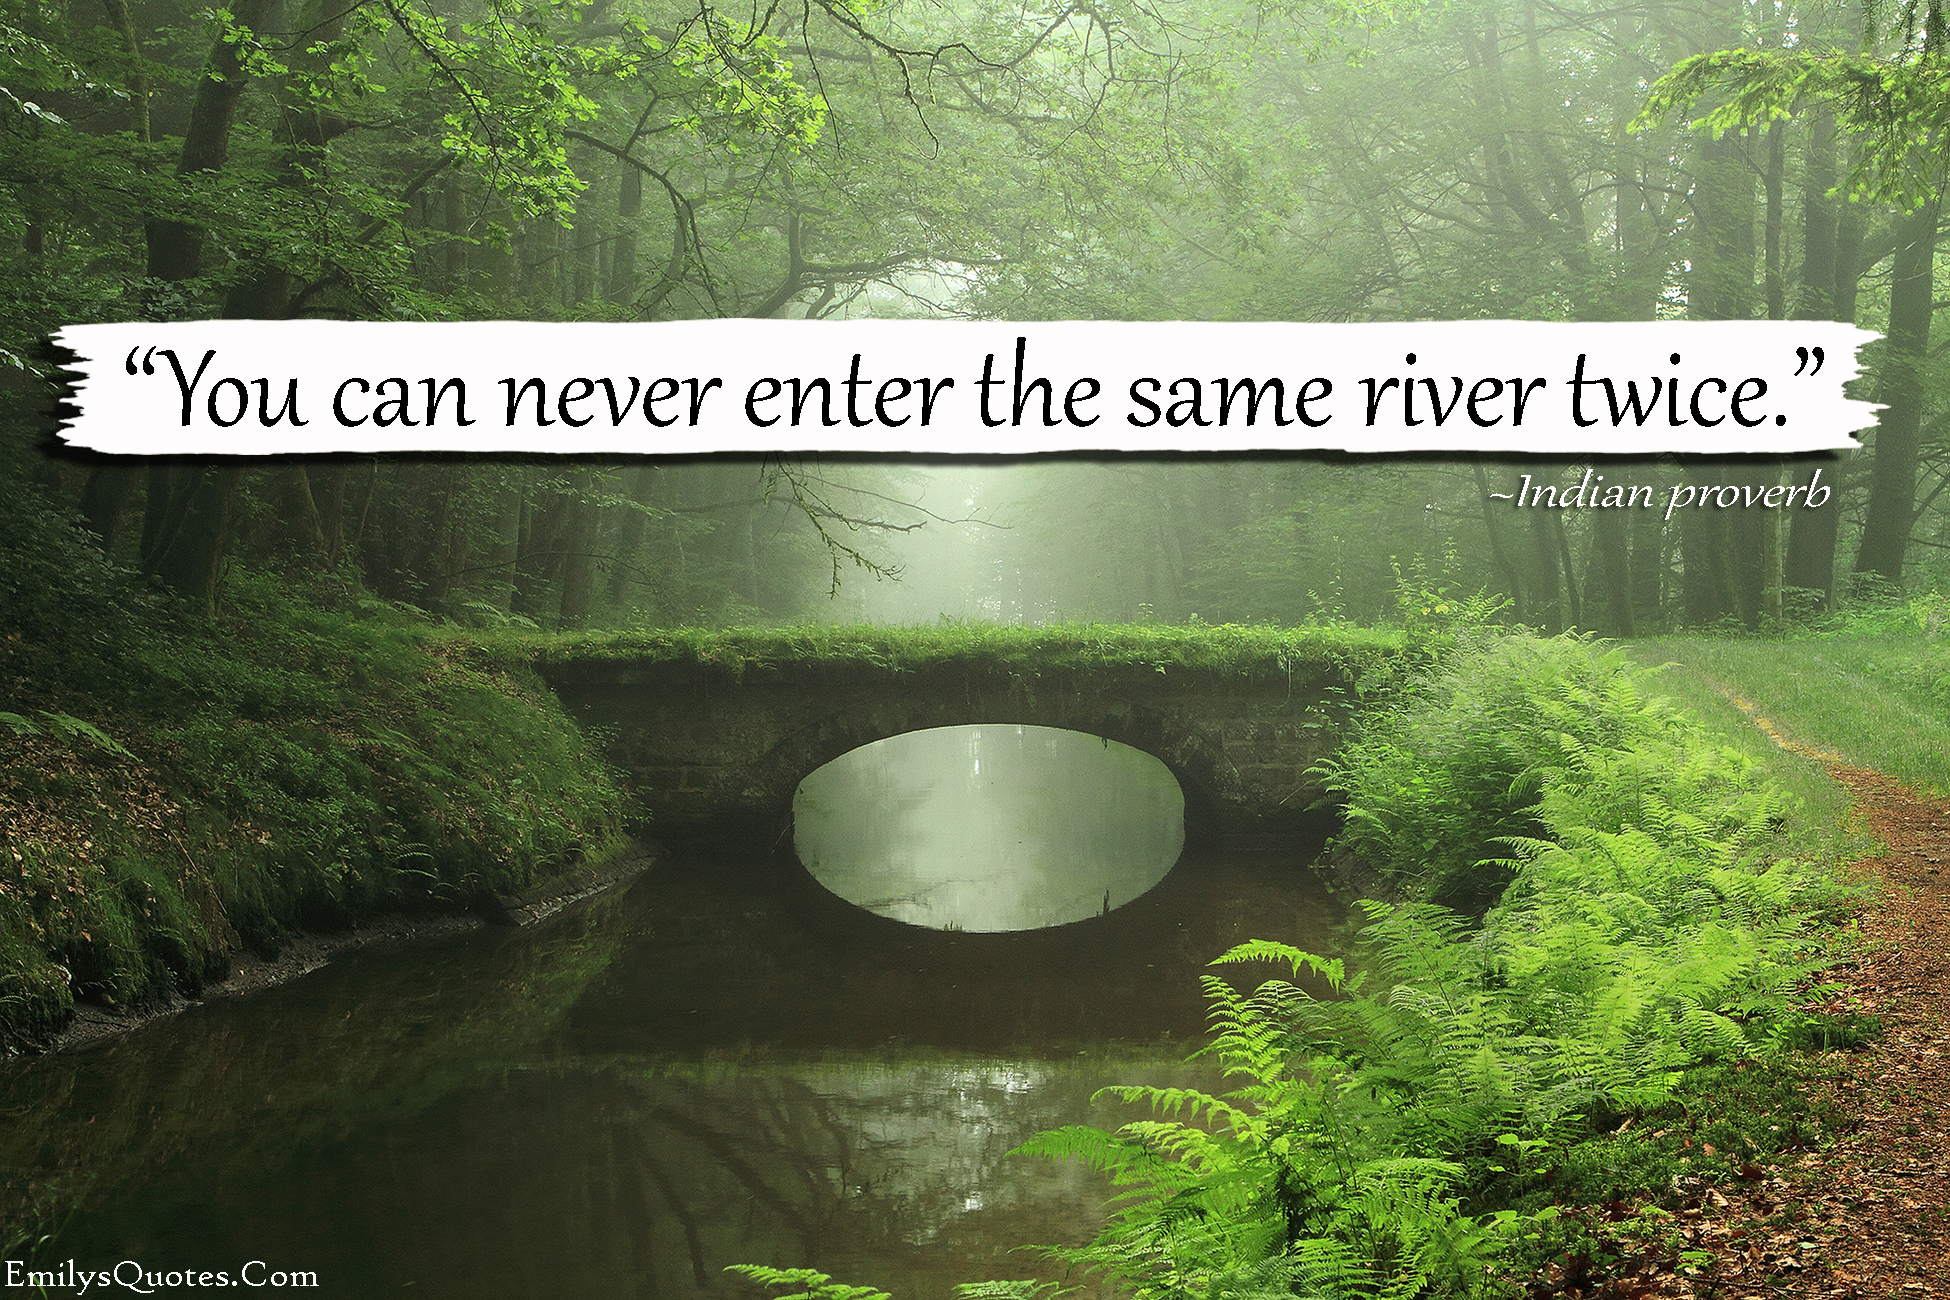 Wisdom About Life Quotes You Can Never Enter The Same River Twice  Popular Inspirational